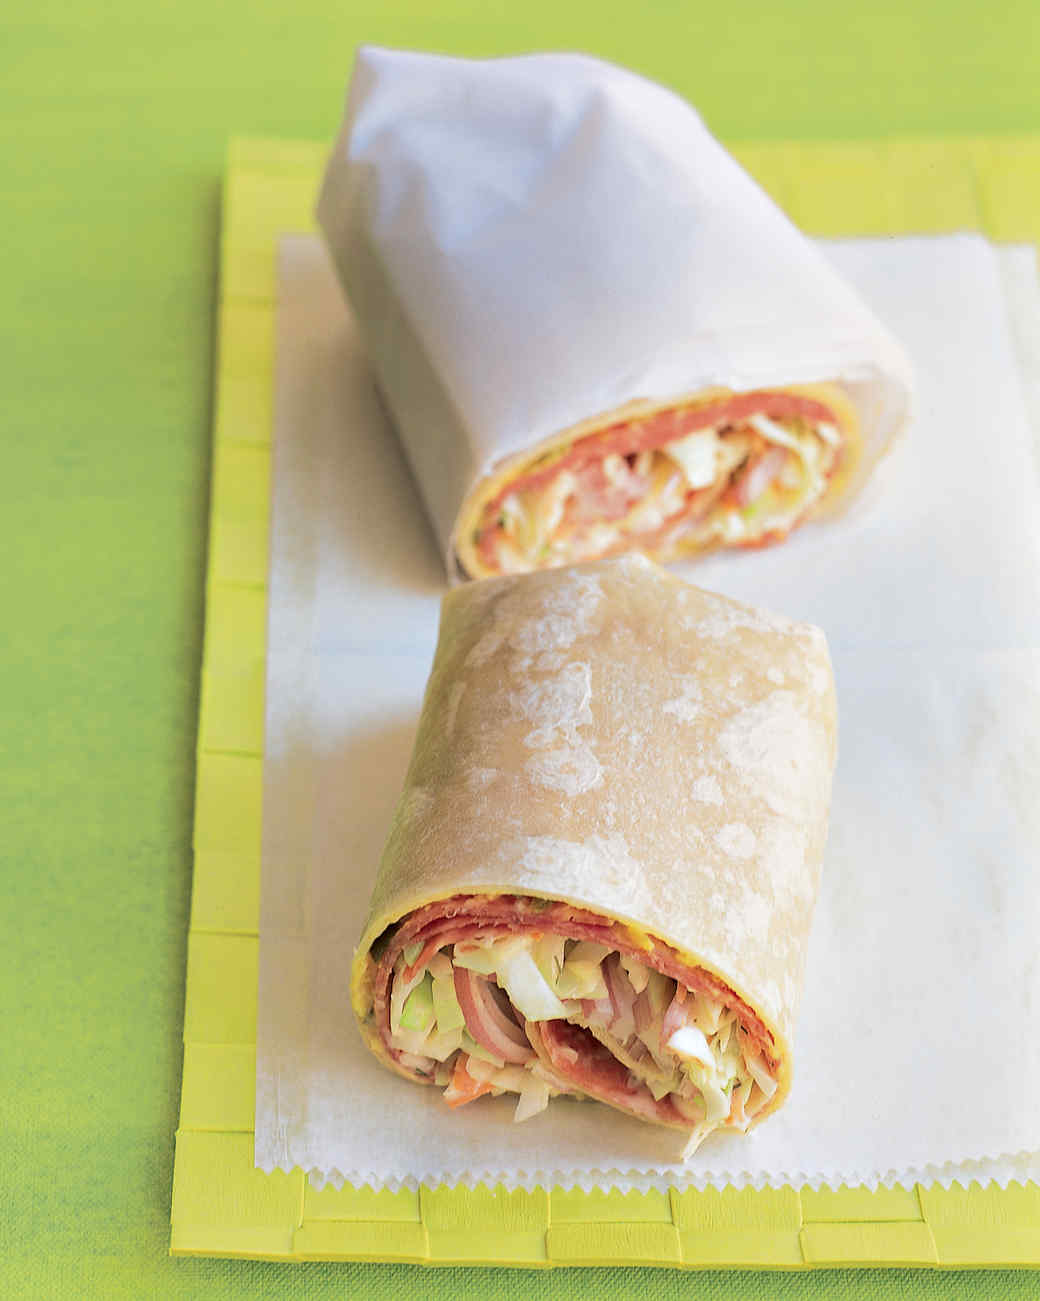 Salami and Coleslaw Wrap